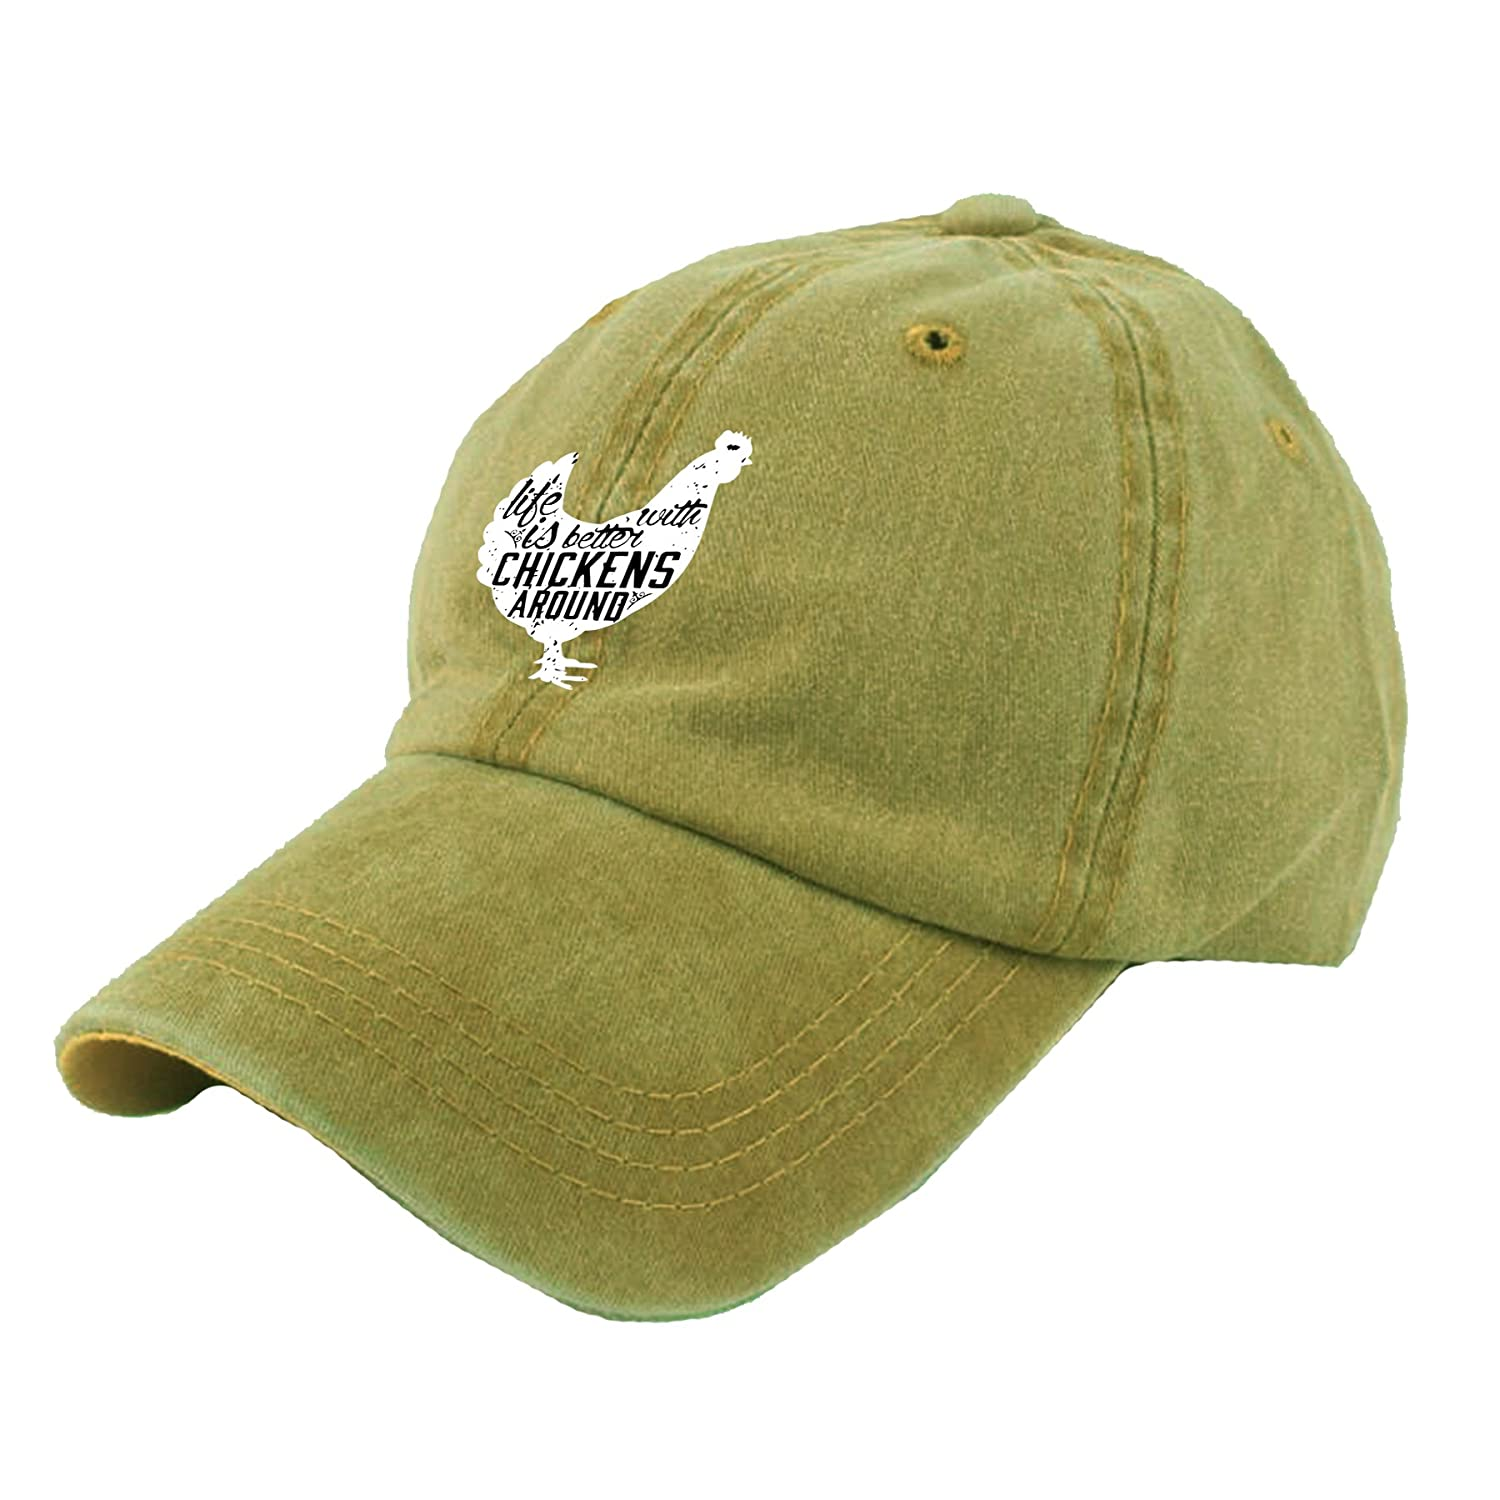 Alility Caps Life is Better with Chickens Around Vintage Adjustable Cowboy Hat Baseball Caps for Adult